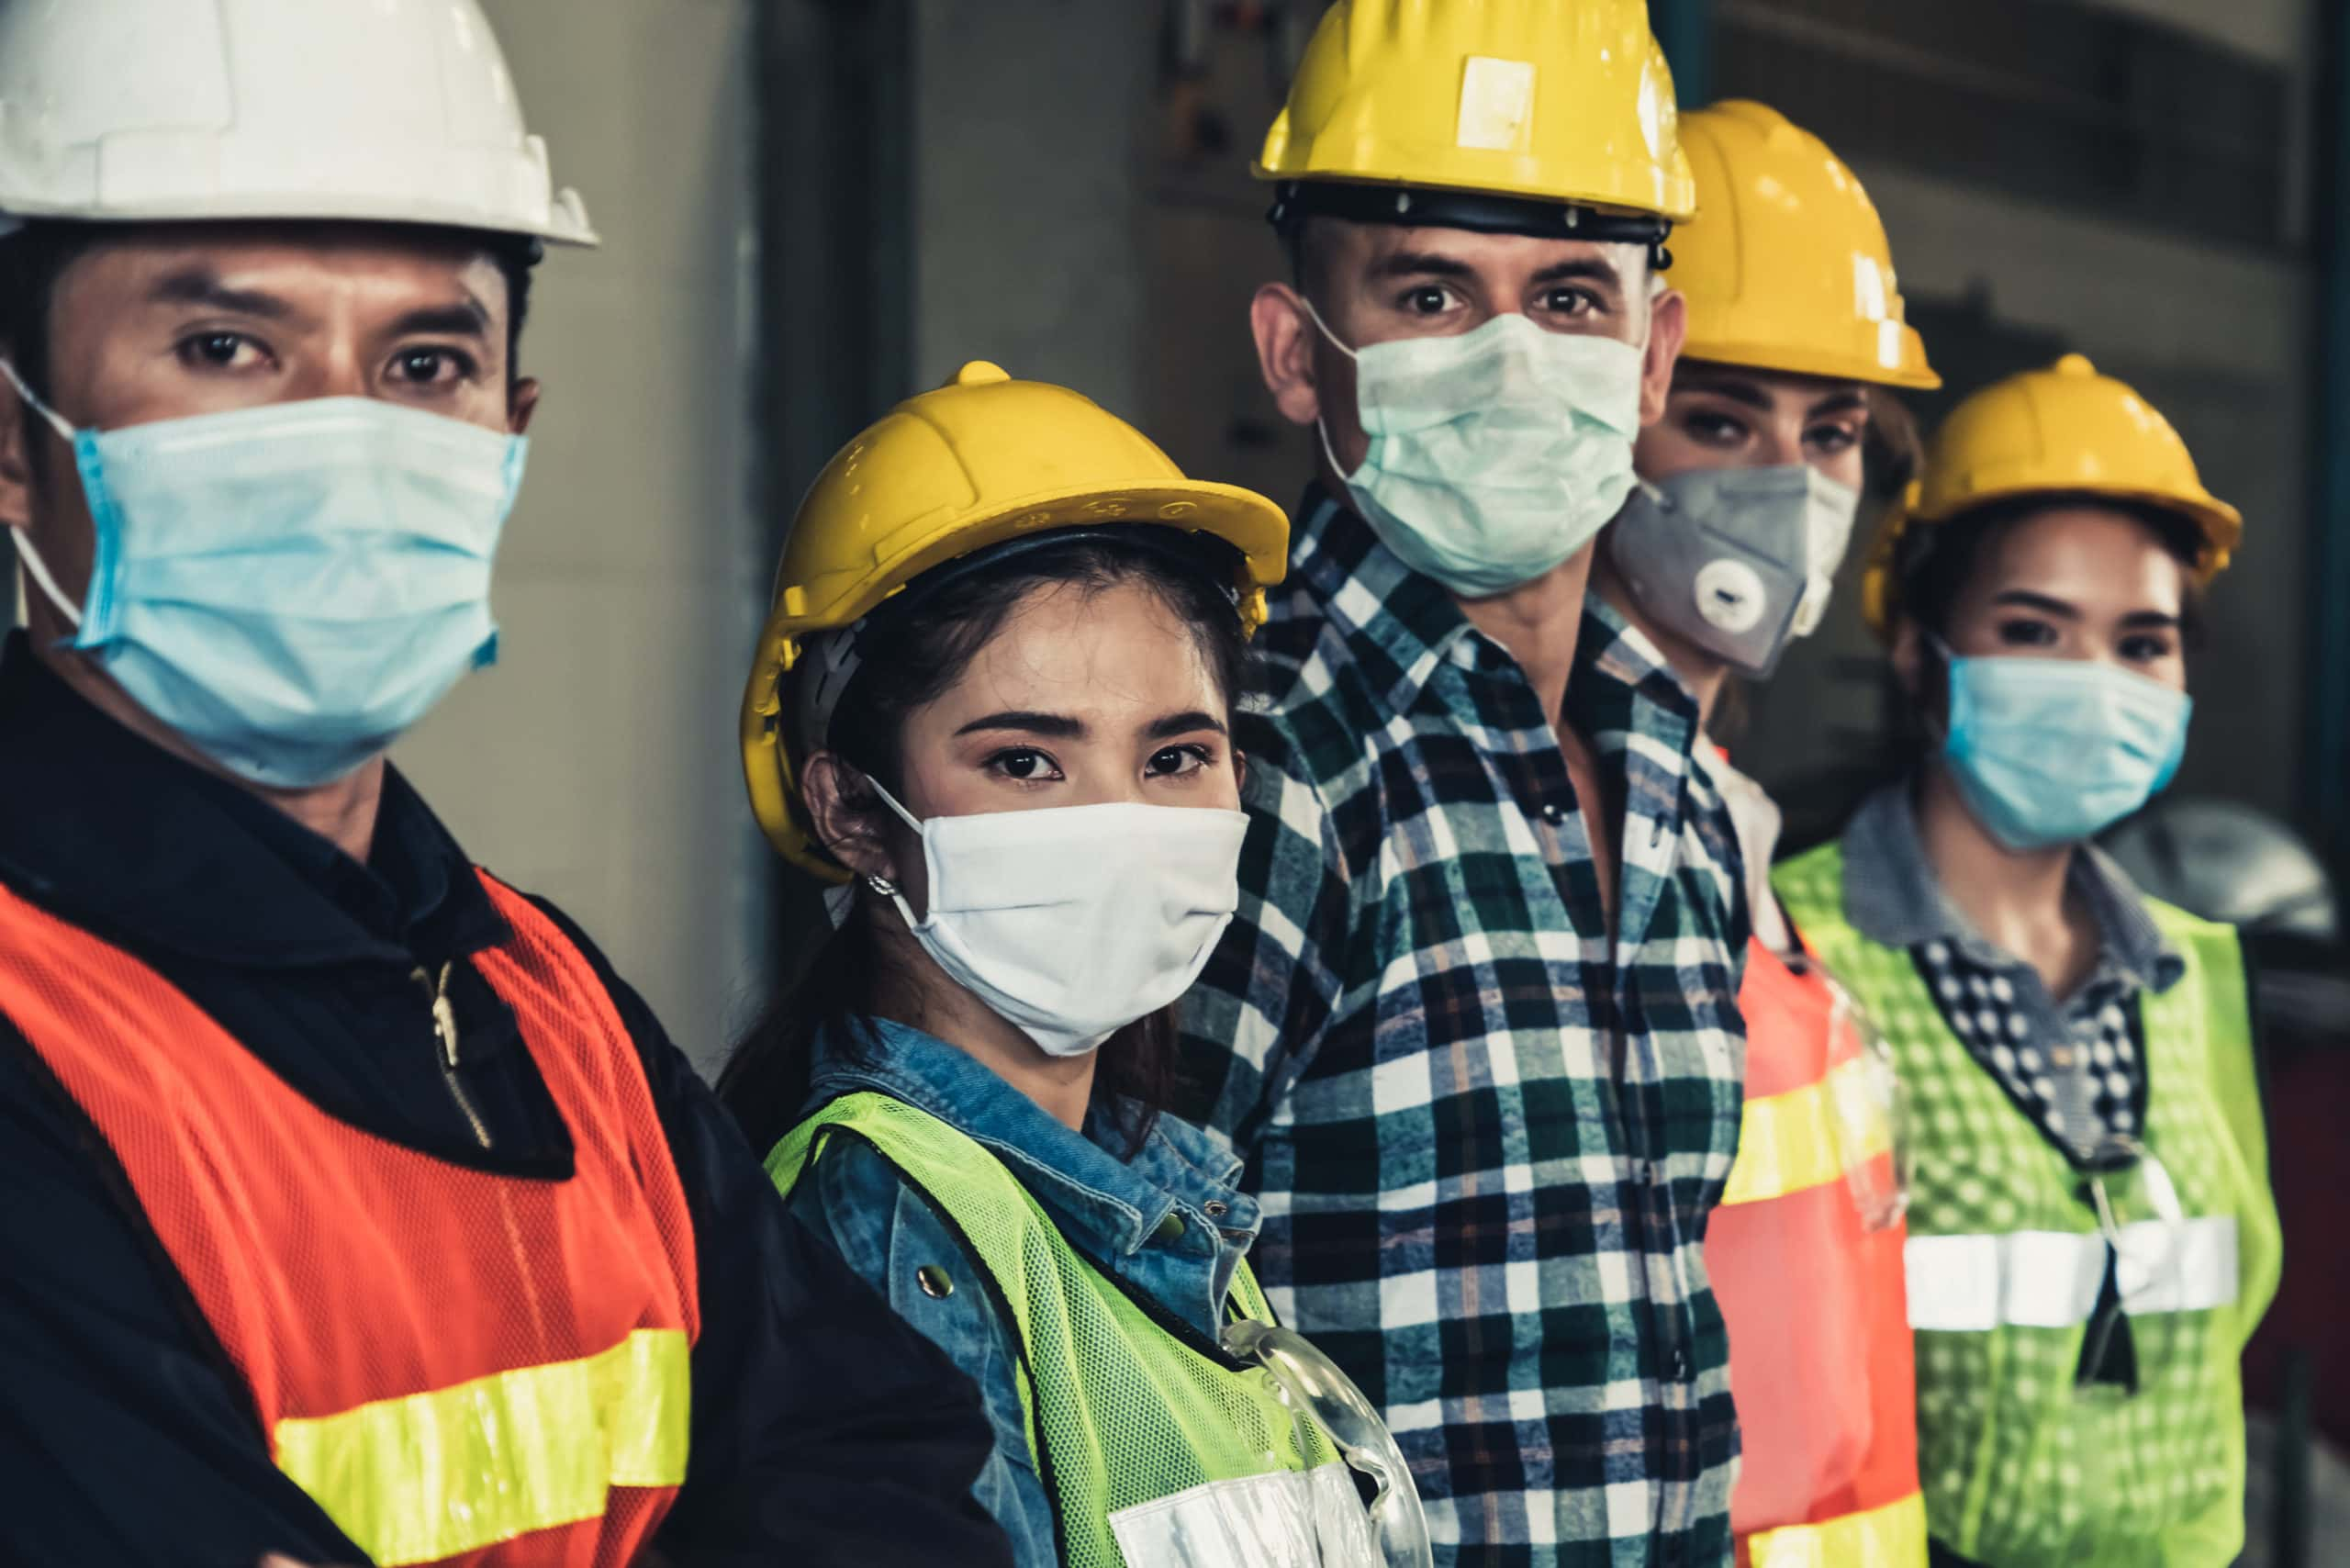 Workers with face masks